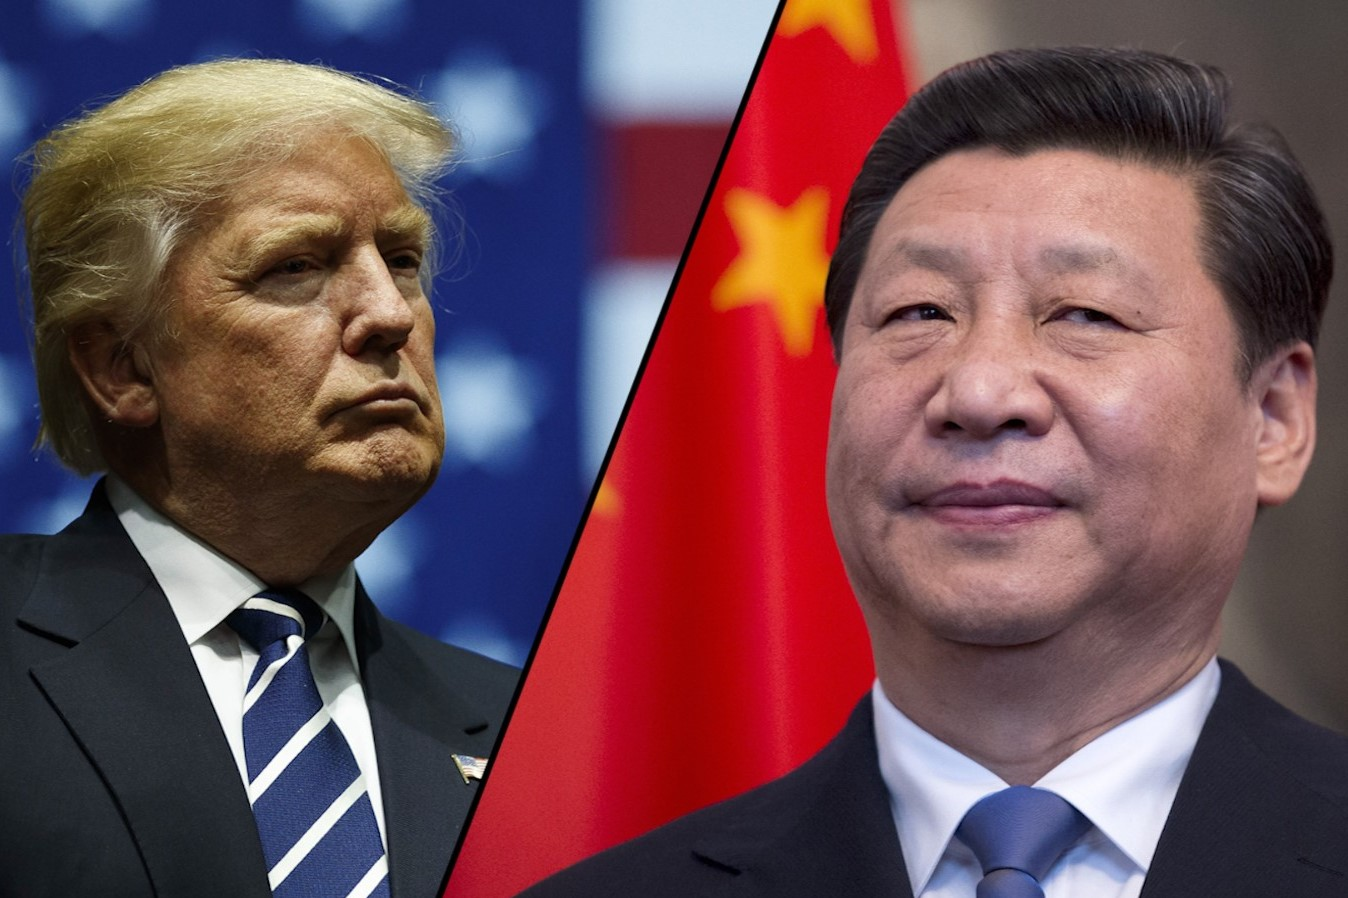 Will US-China trade talks restart?